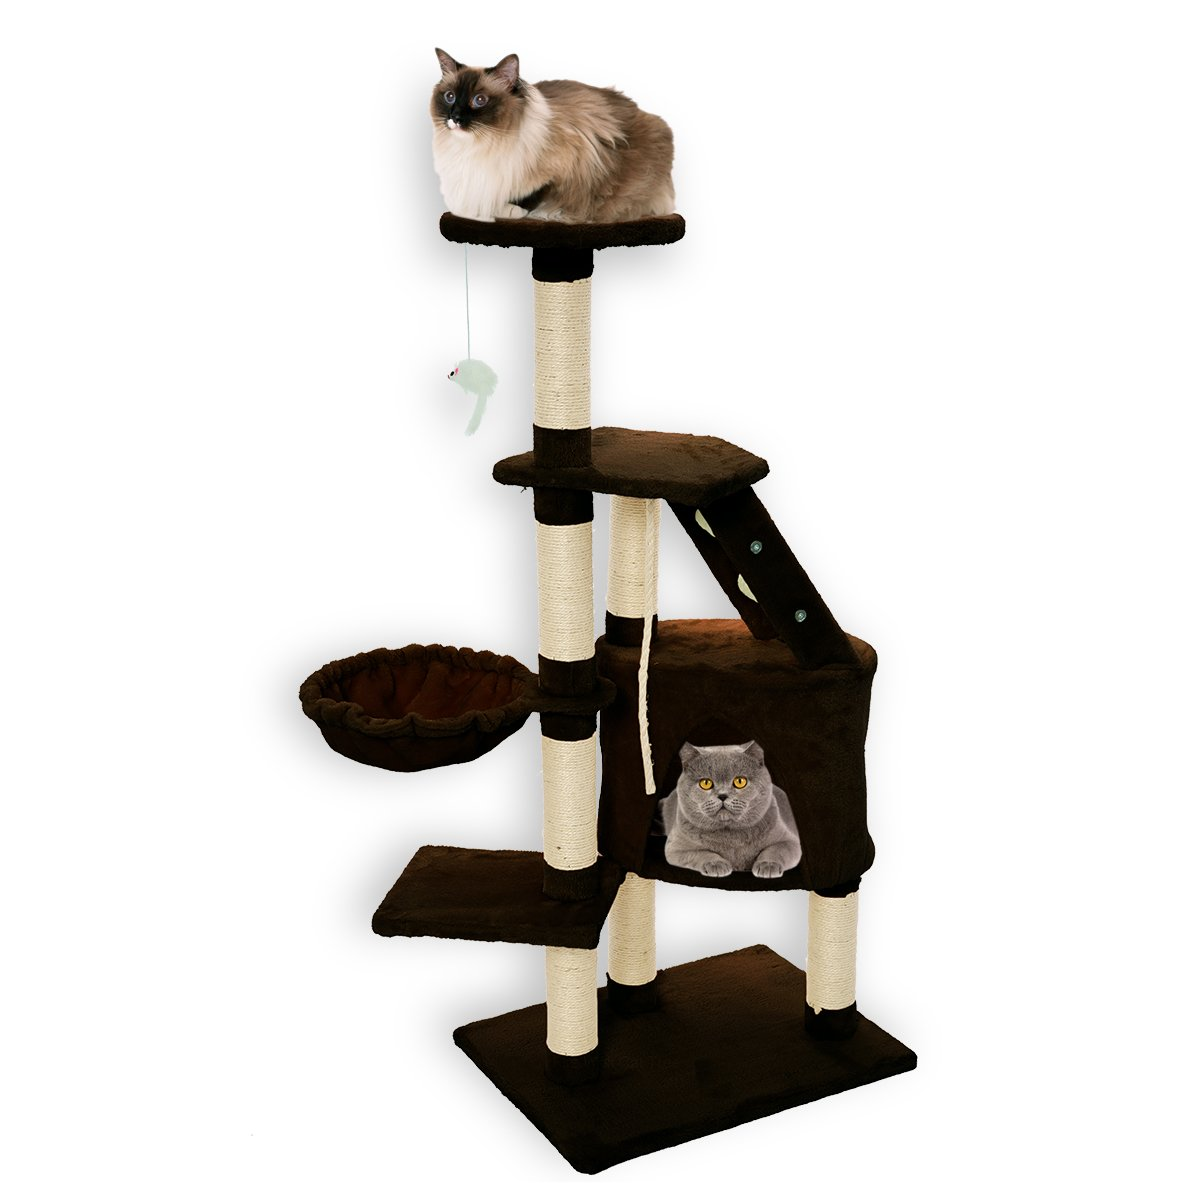 FirstWell Cat Trees - Kitty Condos Tower Furniture, Kitten Climb Stand, with Scratching Post, Natural Sisal Ropes, Hanging Toy, Perch, Nest, 47.25 Inches, Brown